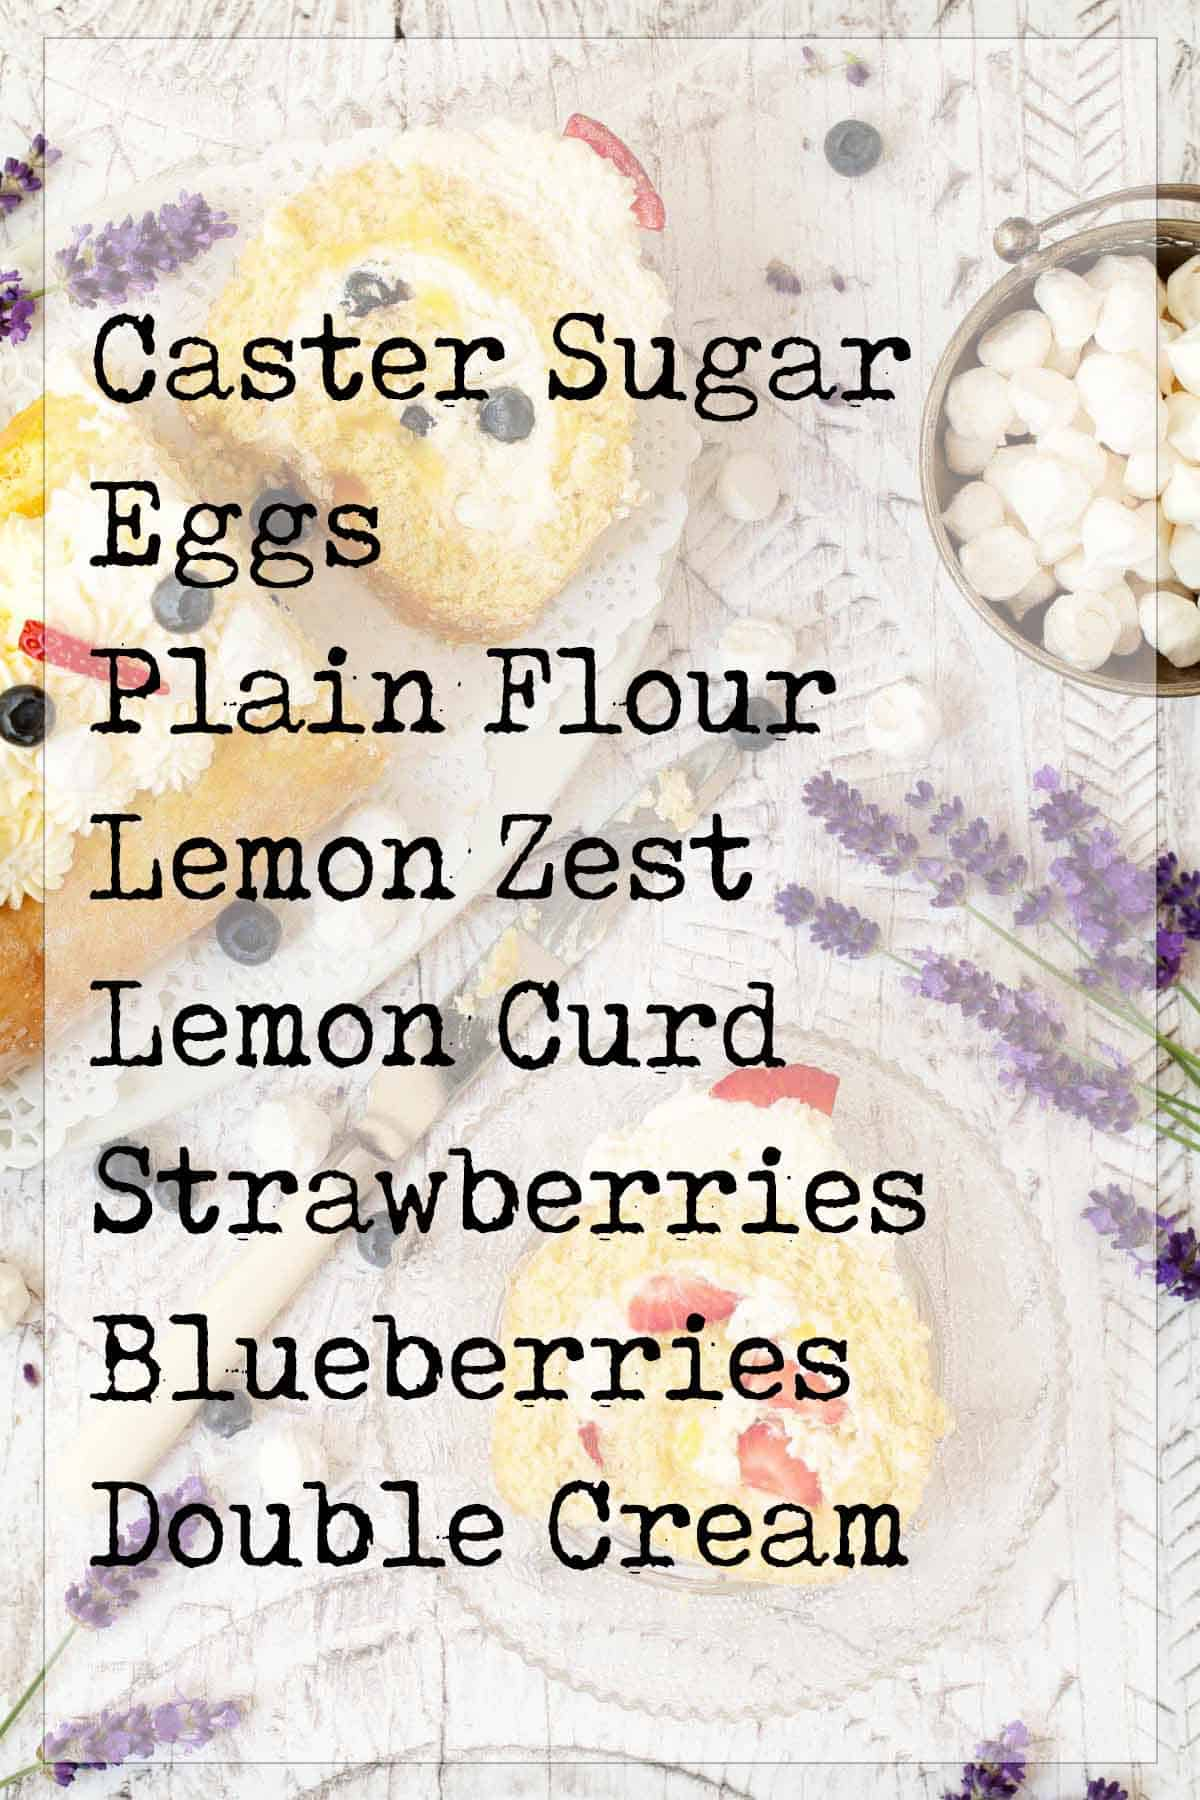 Ingredients list (text overlay) for a Swiss roll